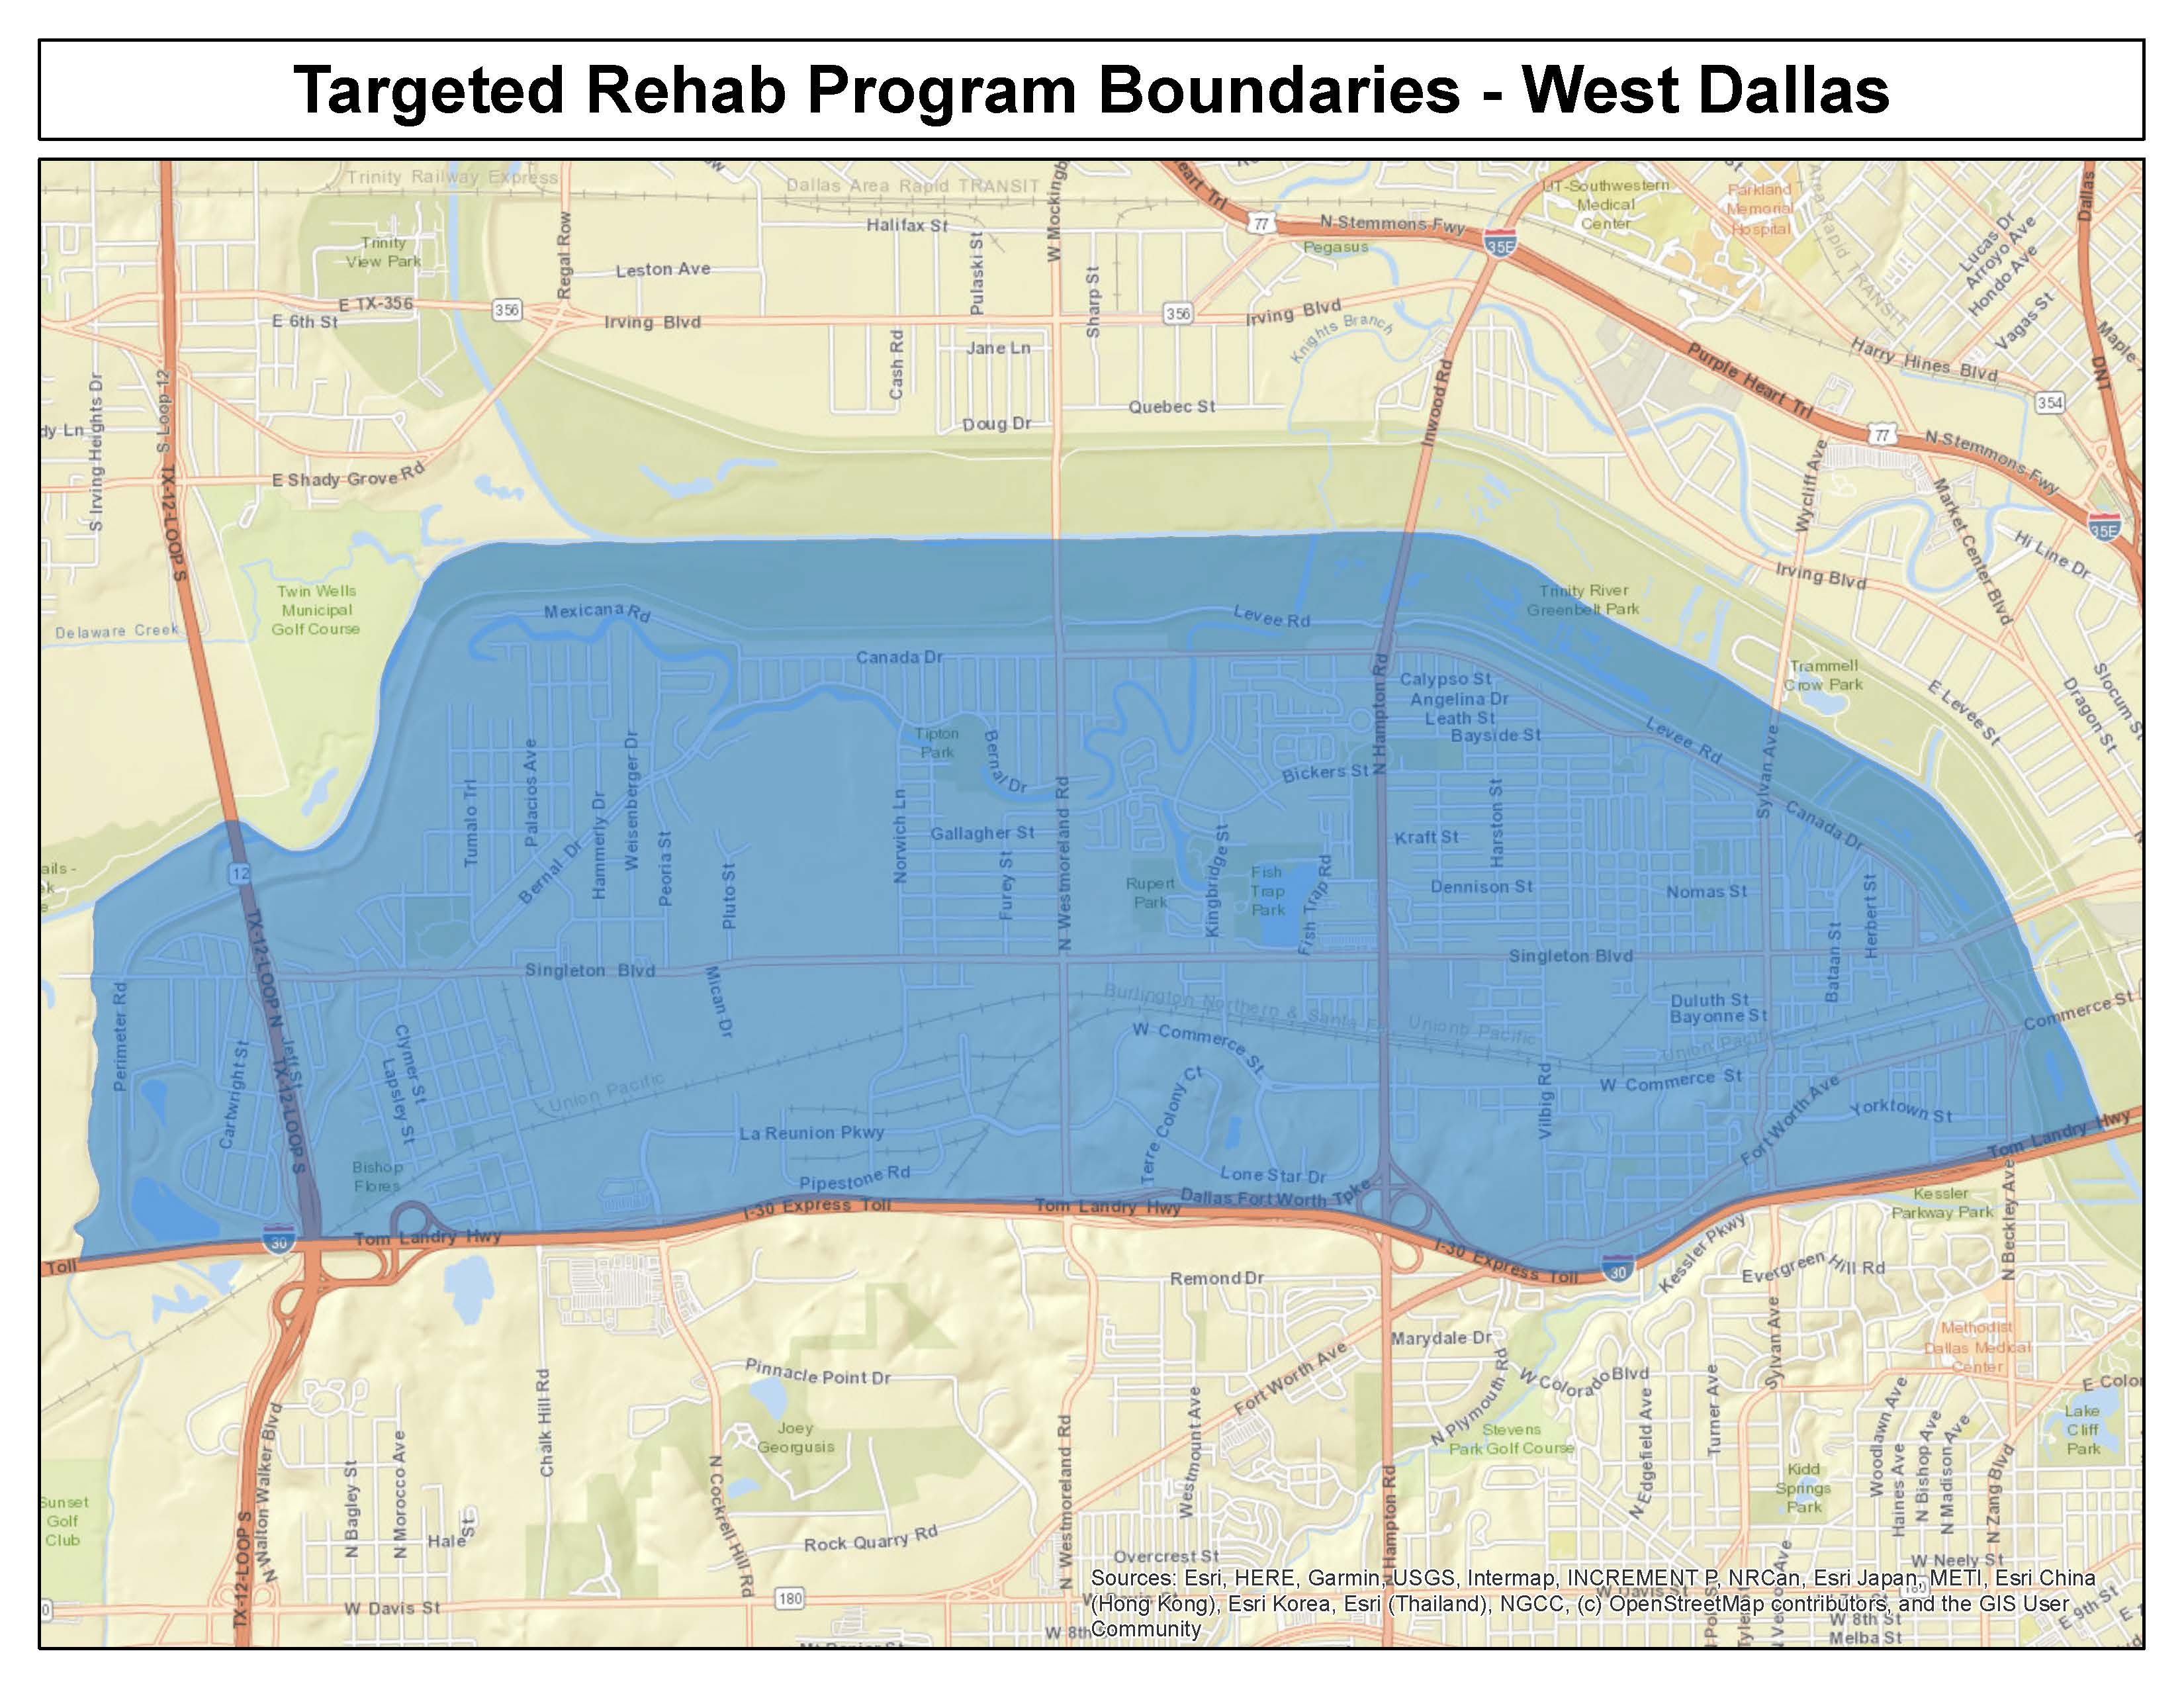 West Dallas Boundary.jpg